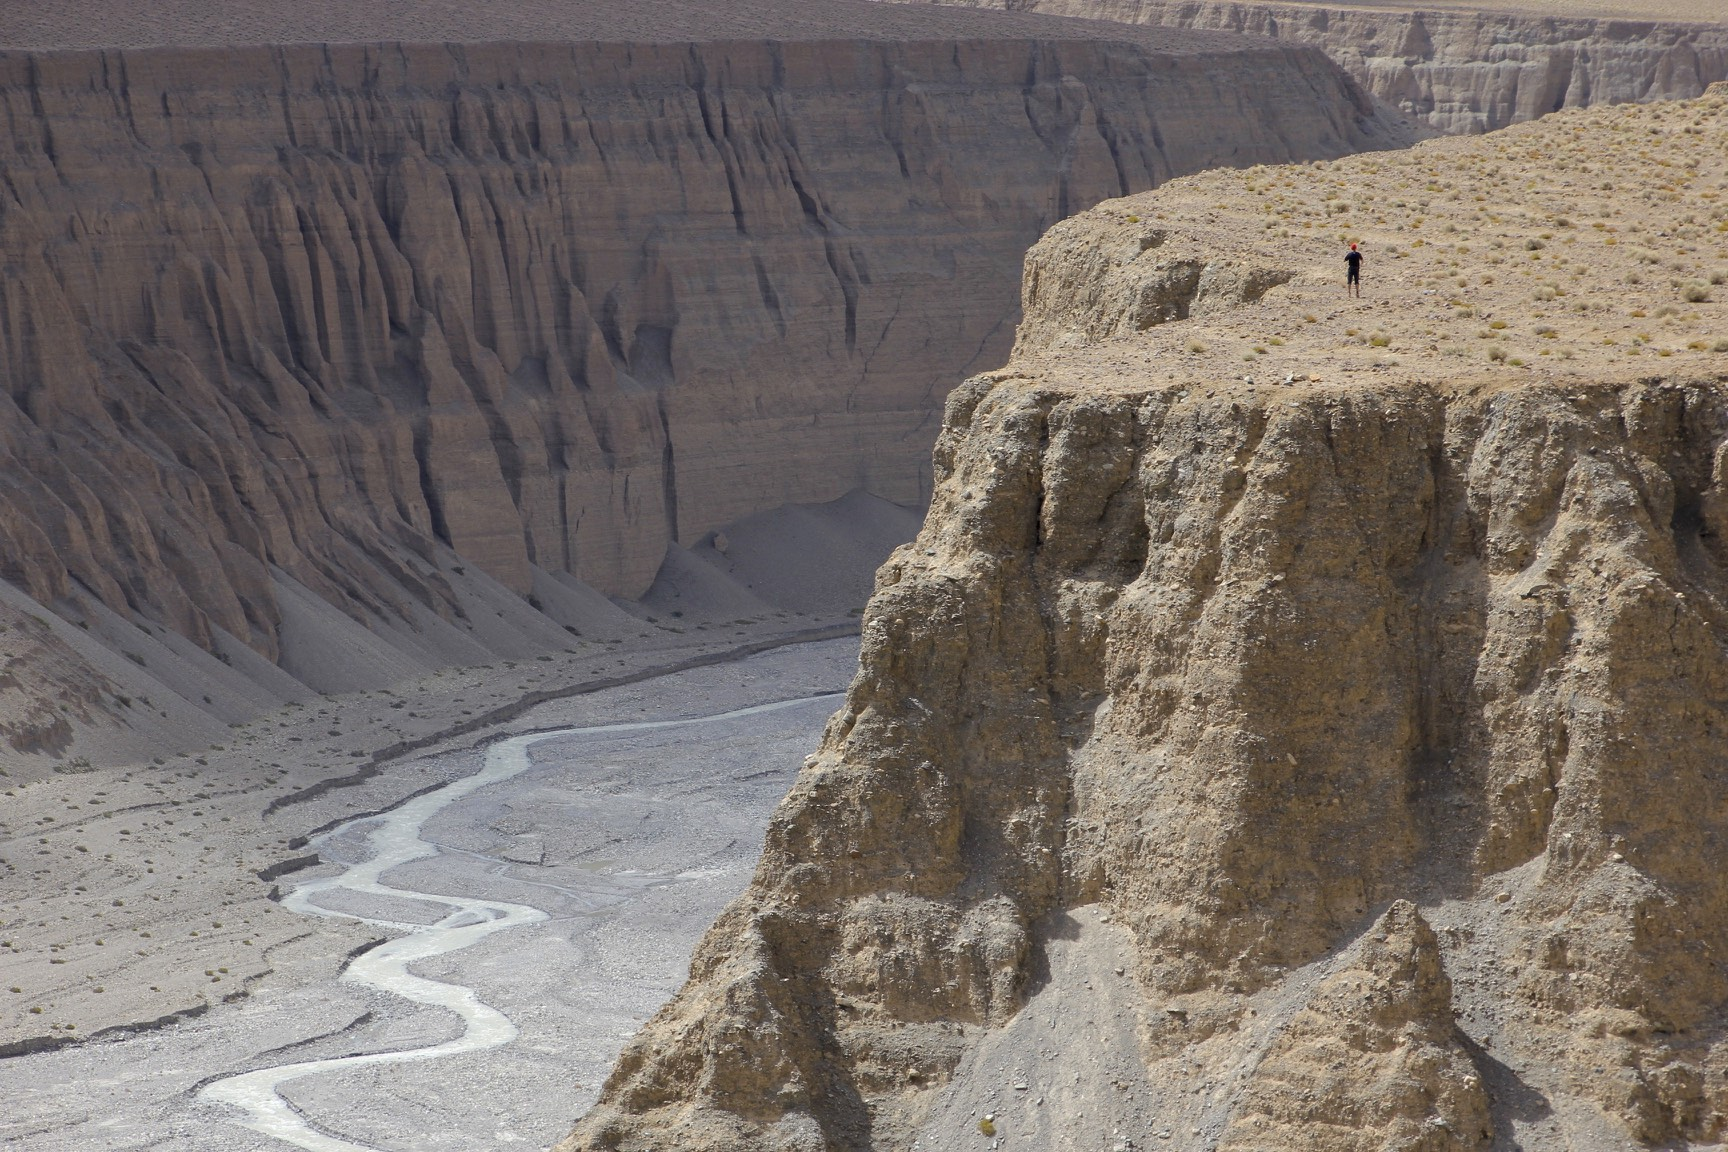 The awesome deep gorges of Northern Karakoram